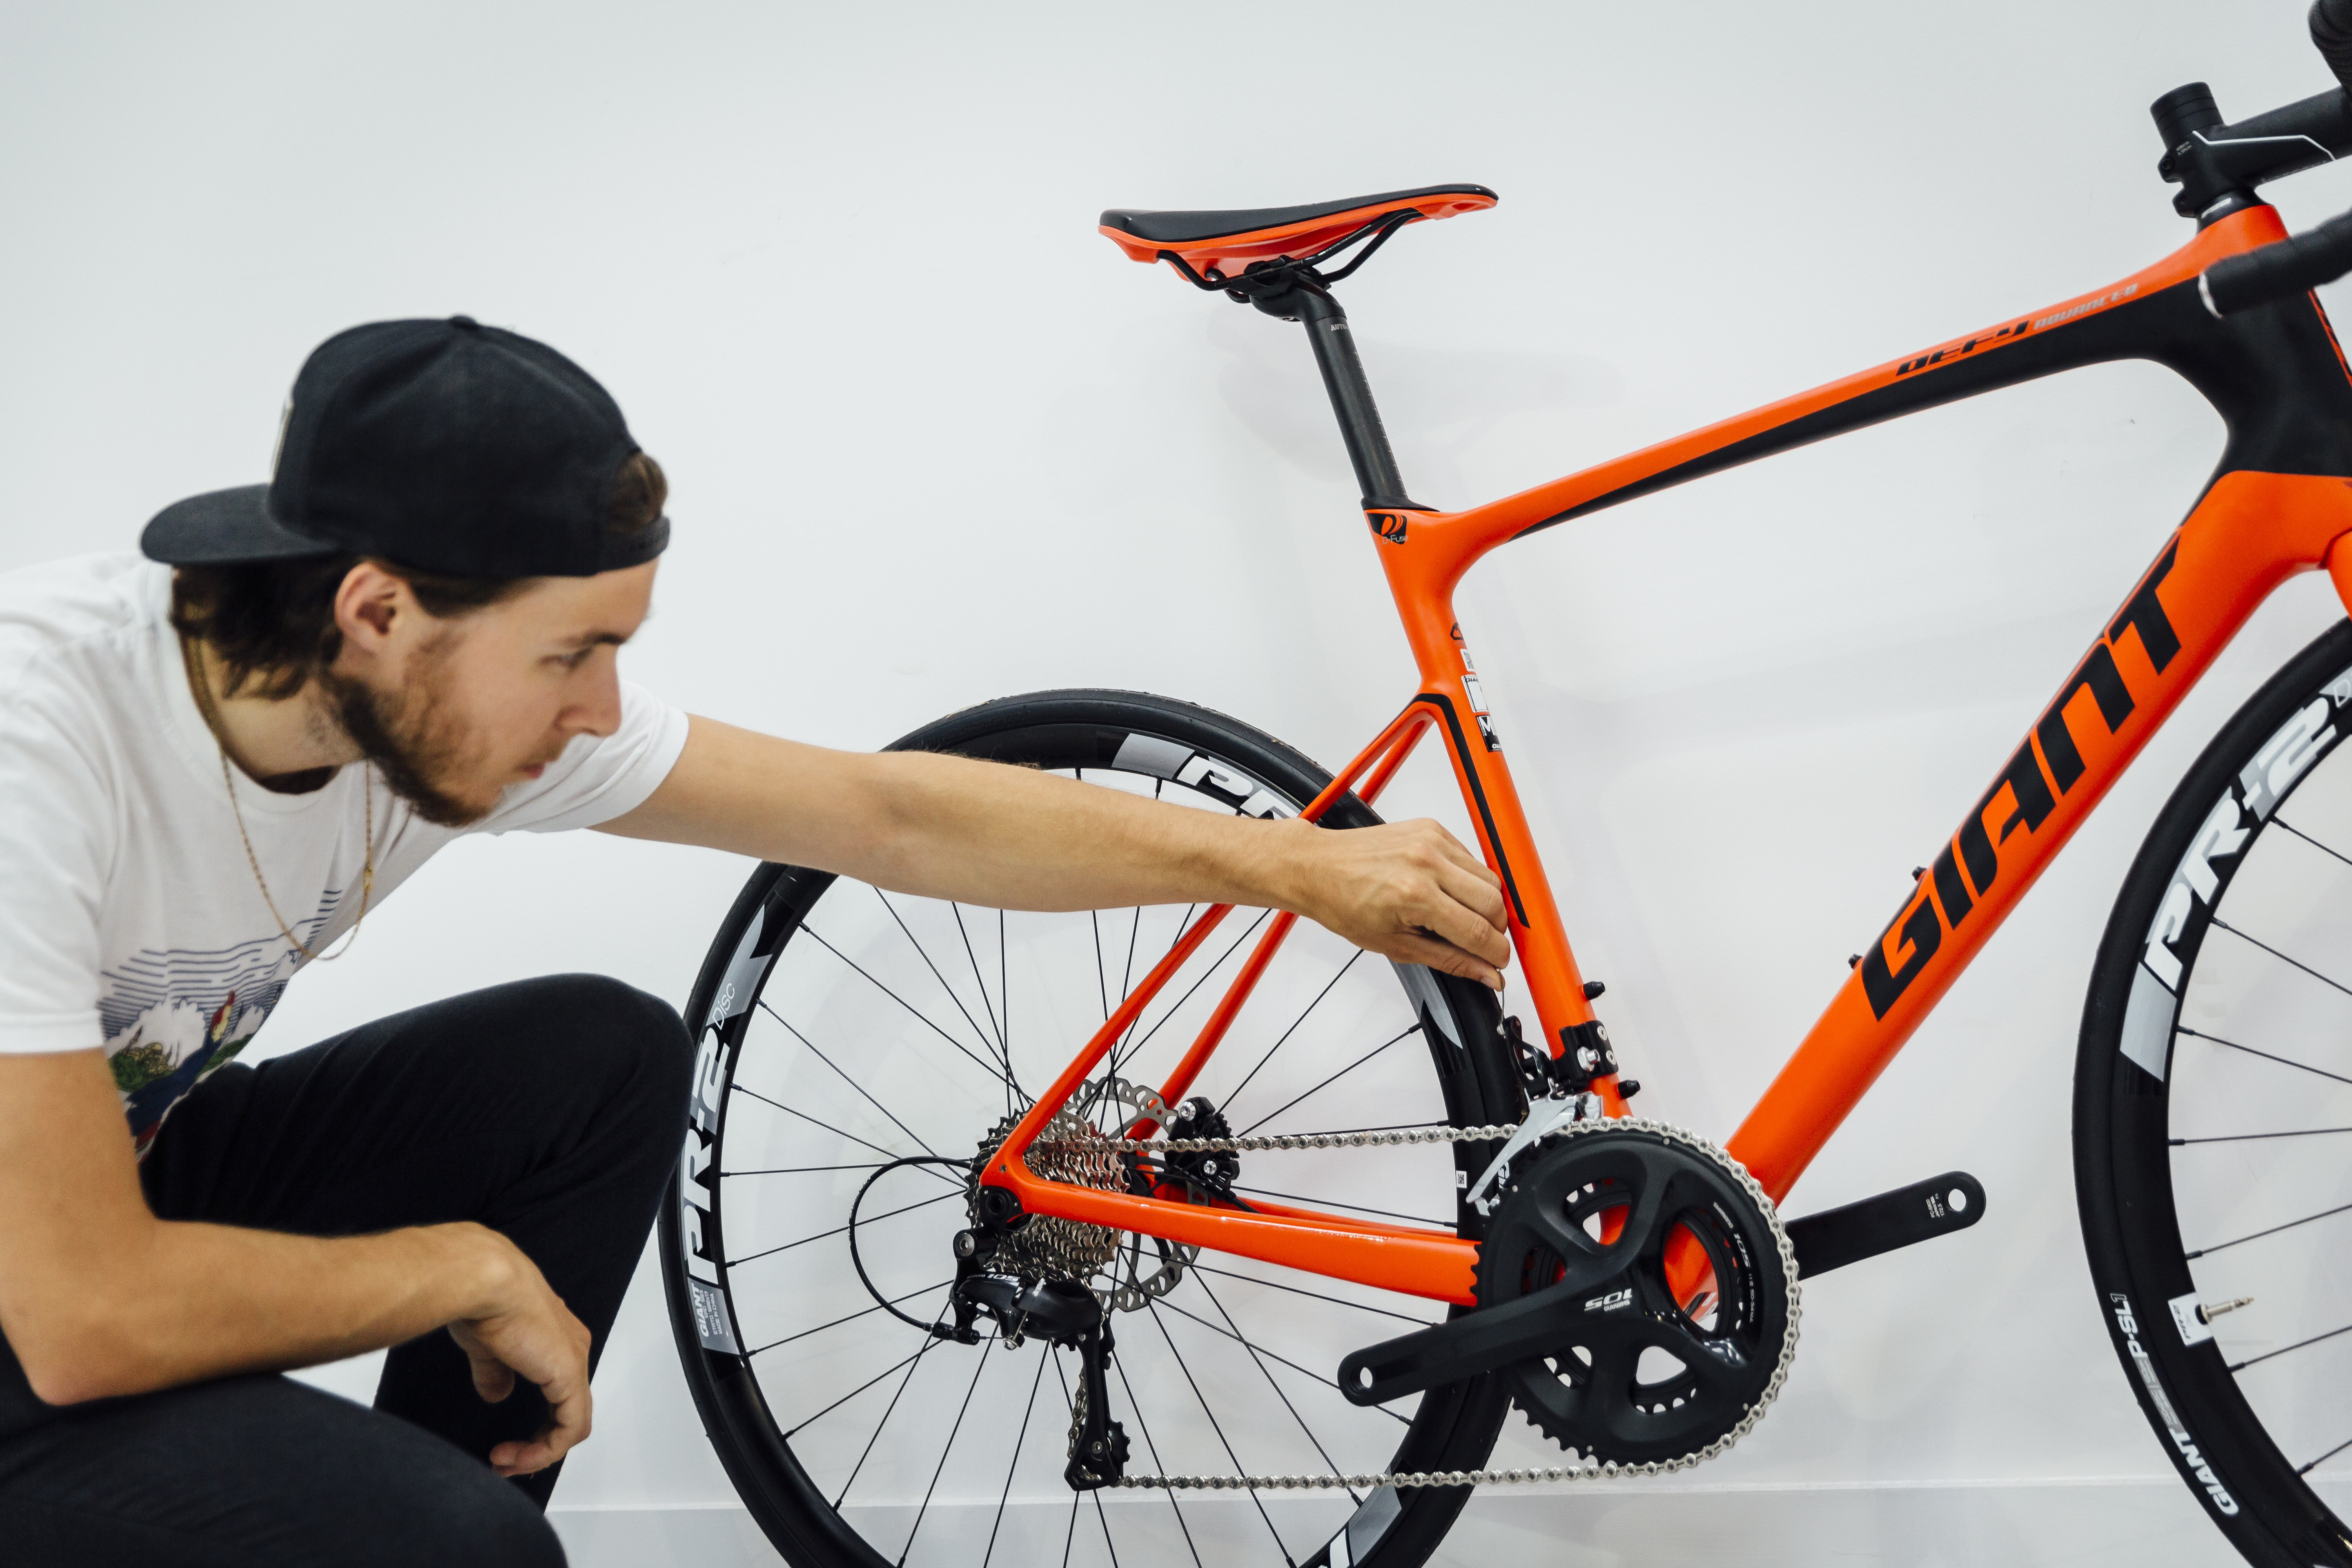 Tips for buying second hand bikes